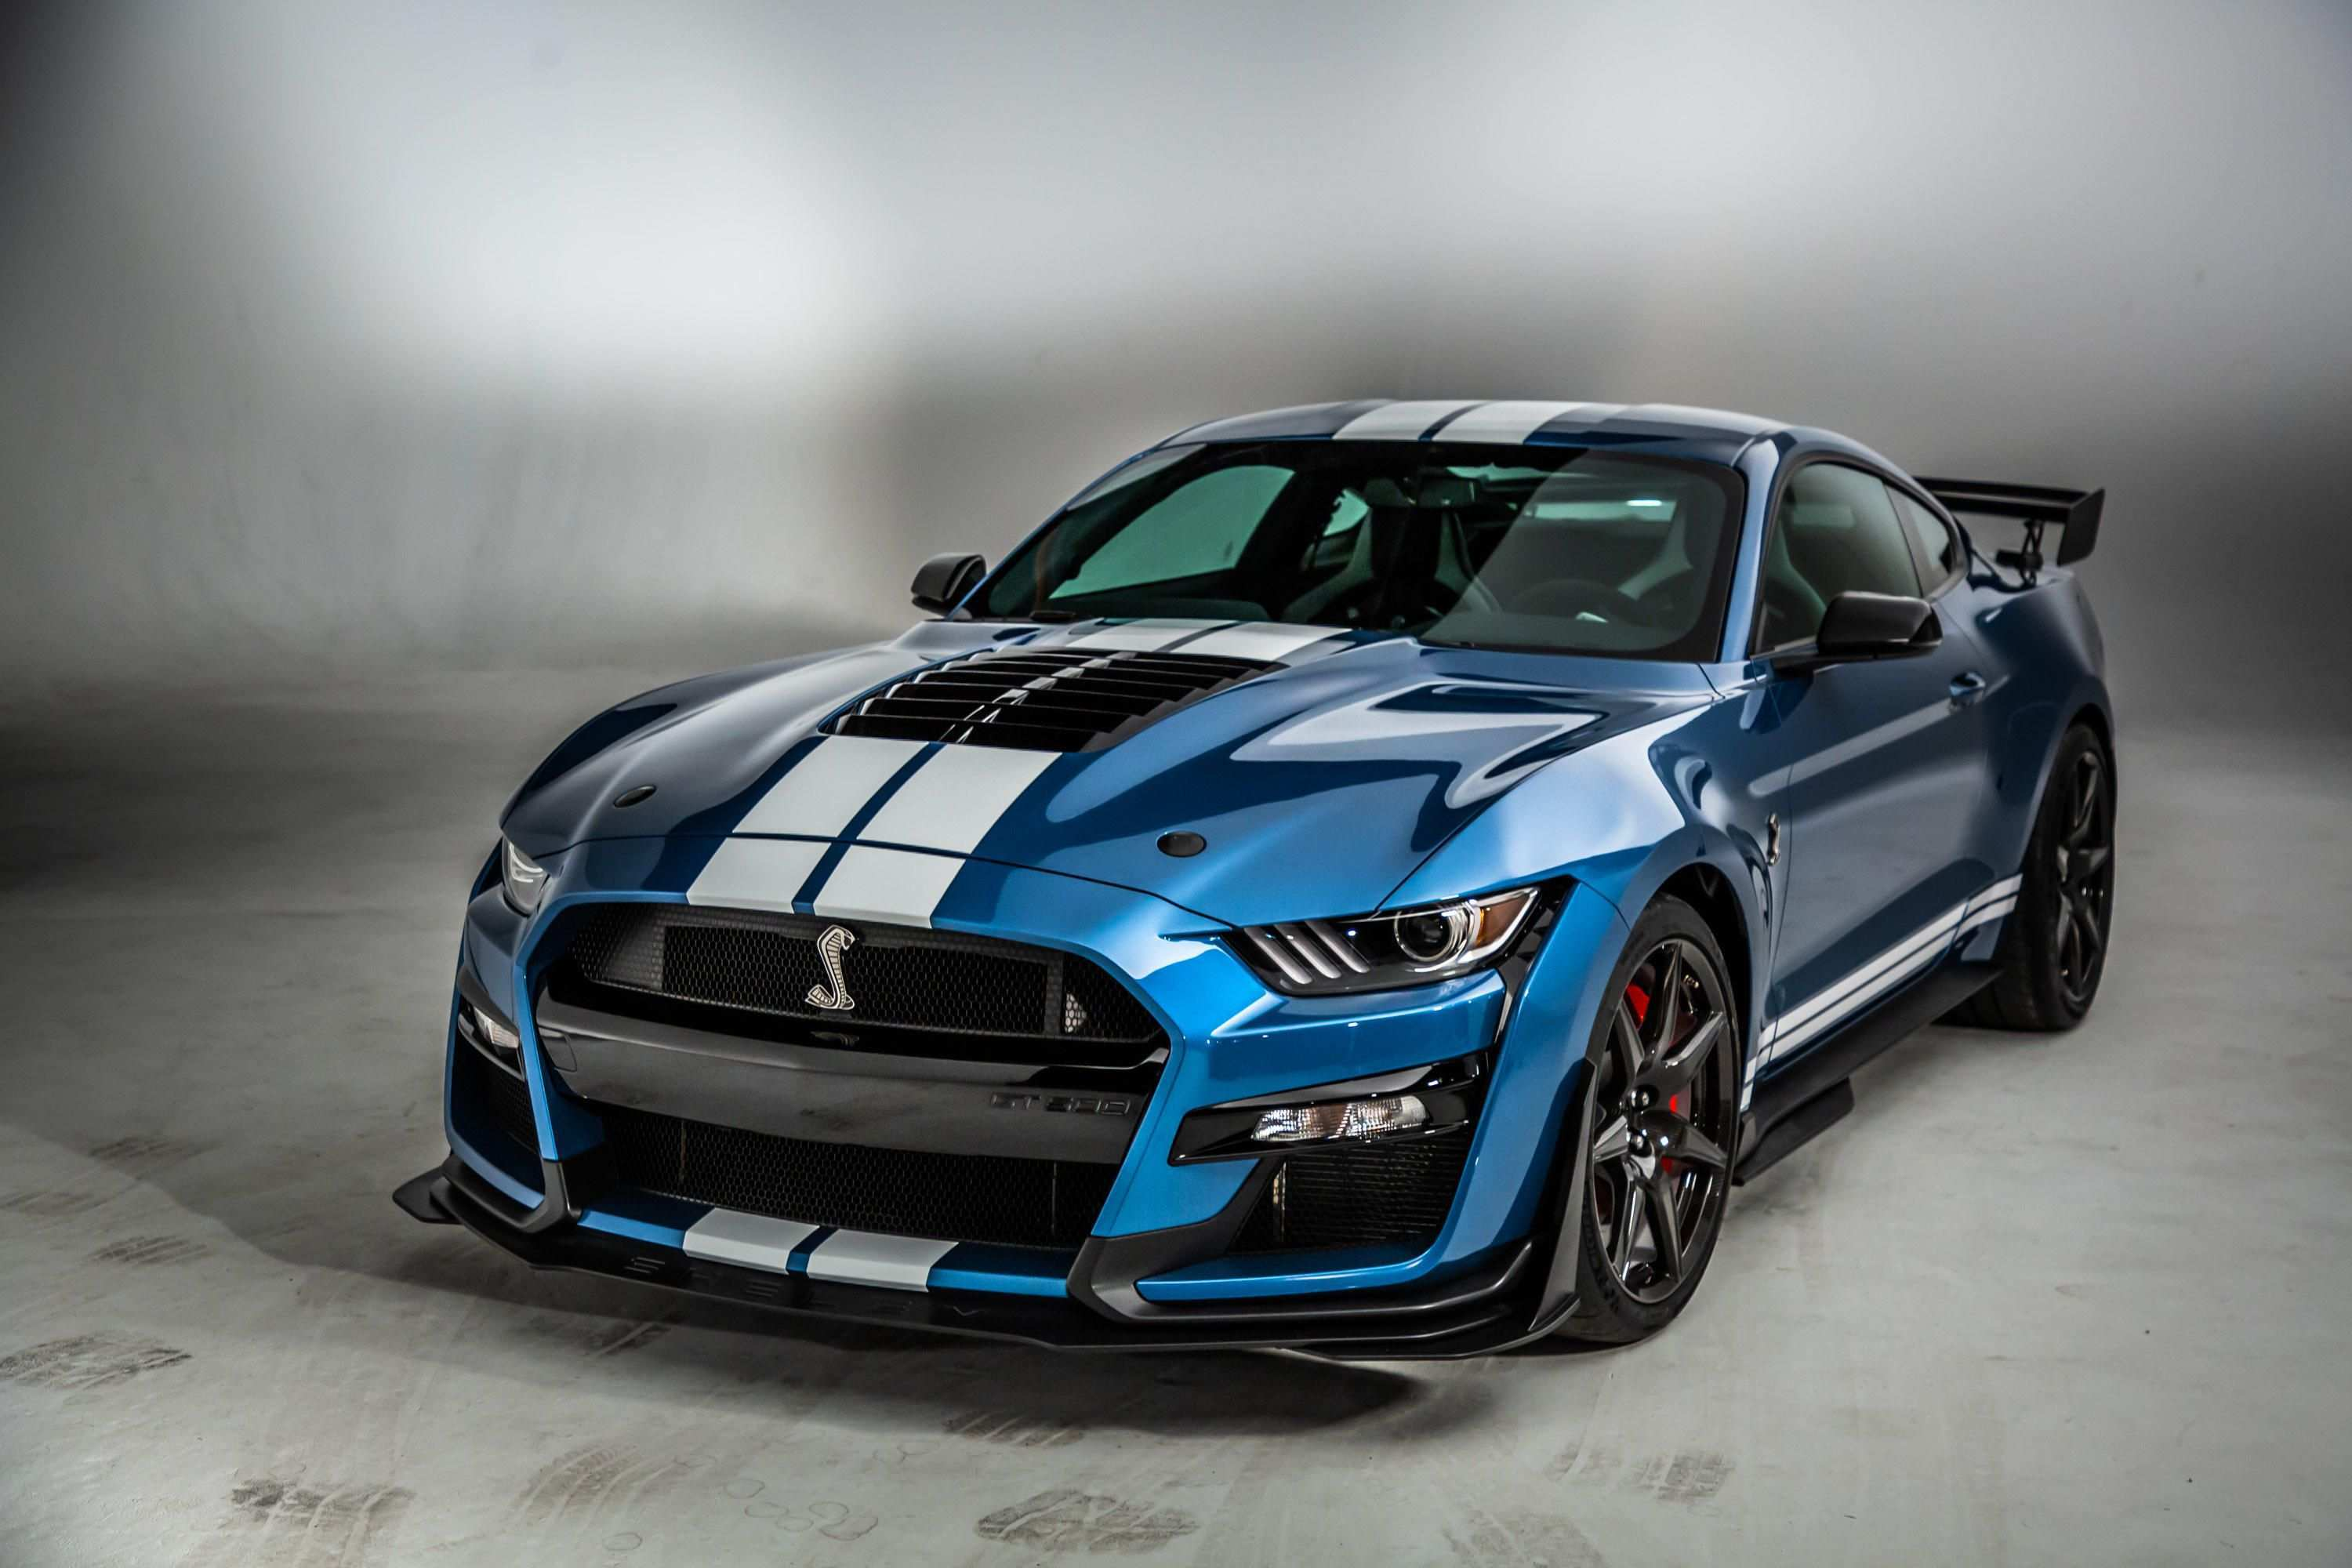 67 Best 2020 Ford Shelby Gt500 Price Wallpaper